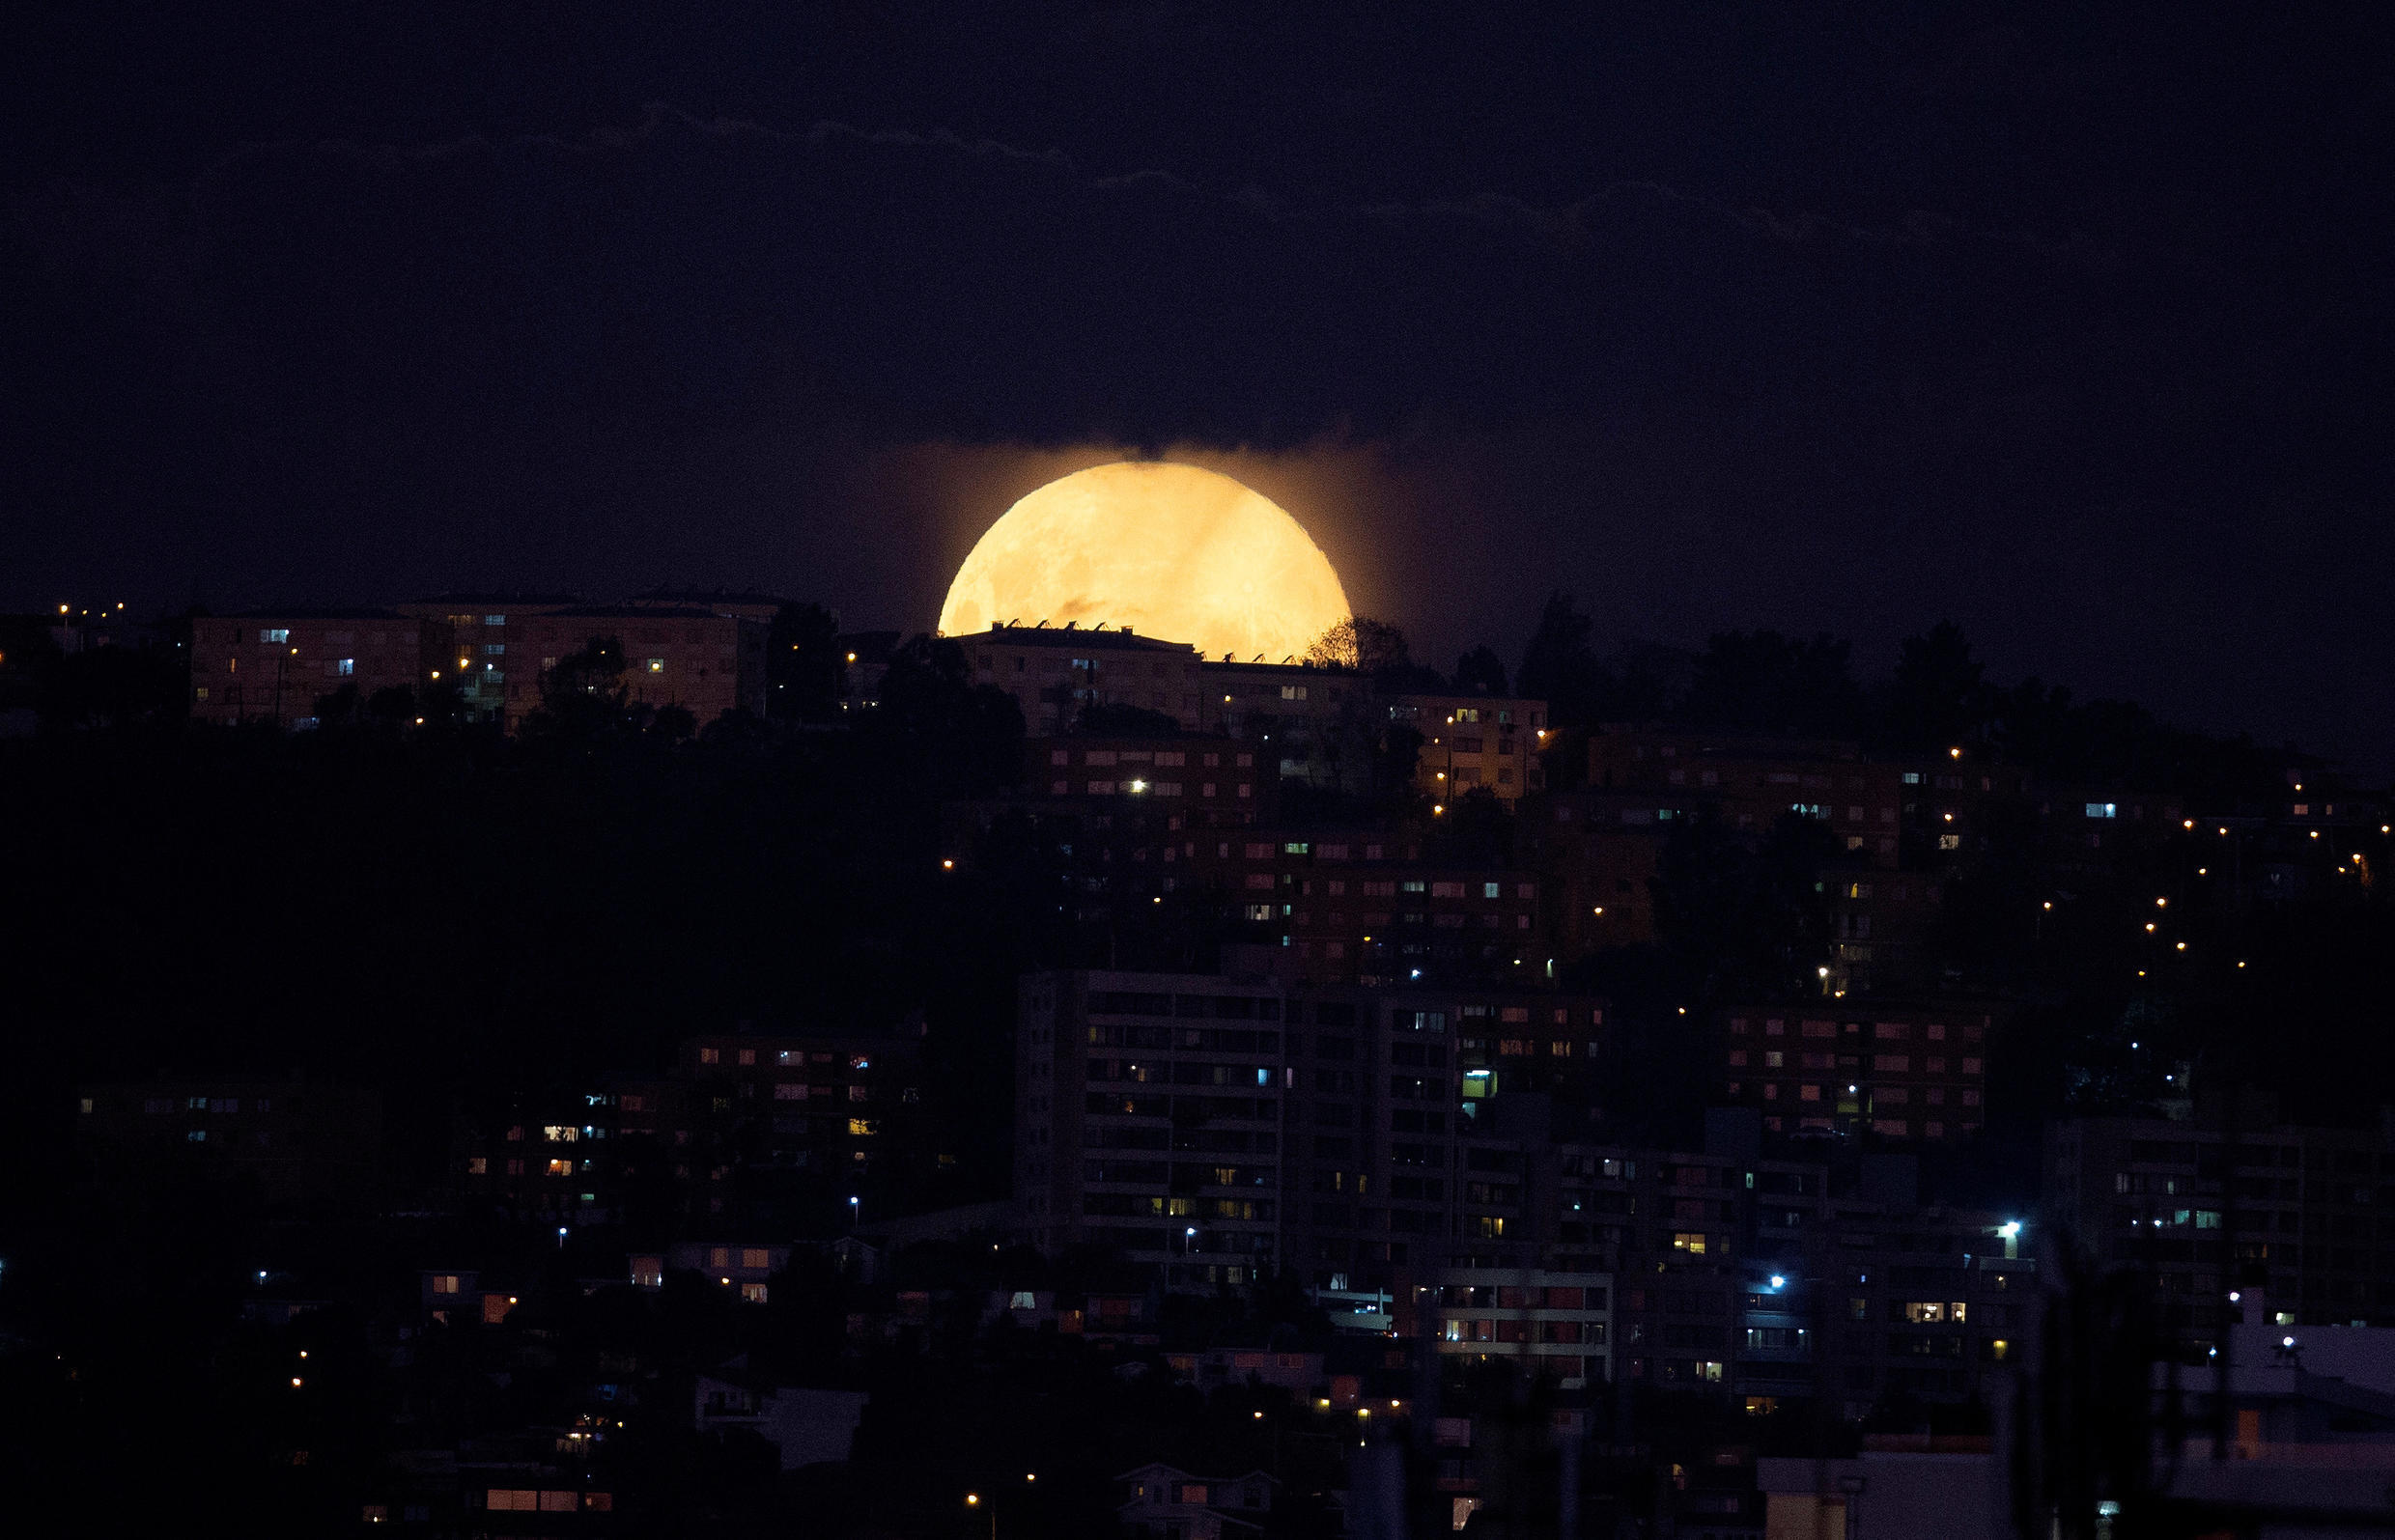 Super Flower Moon: the last supermoon of 2020